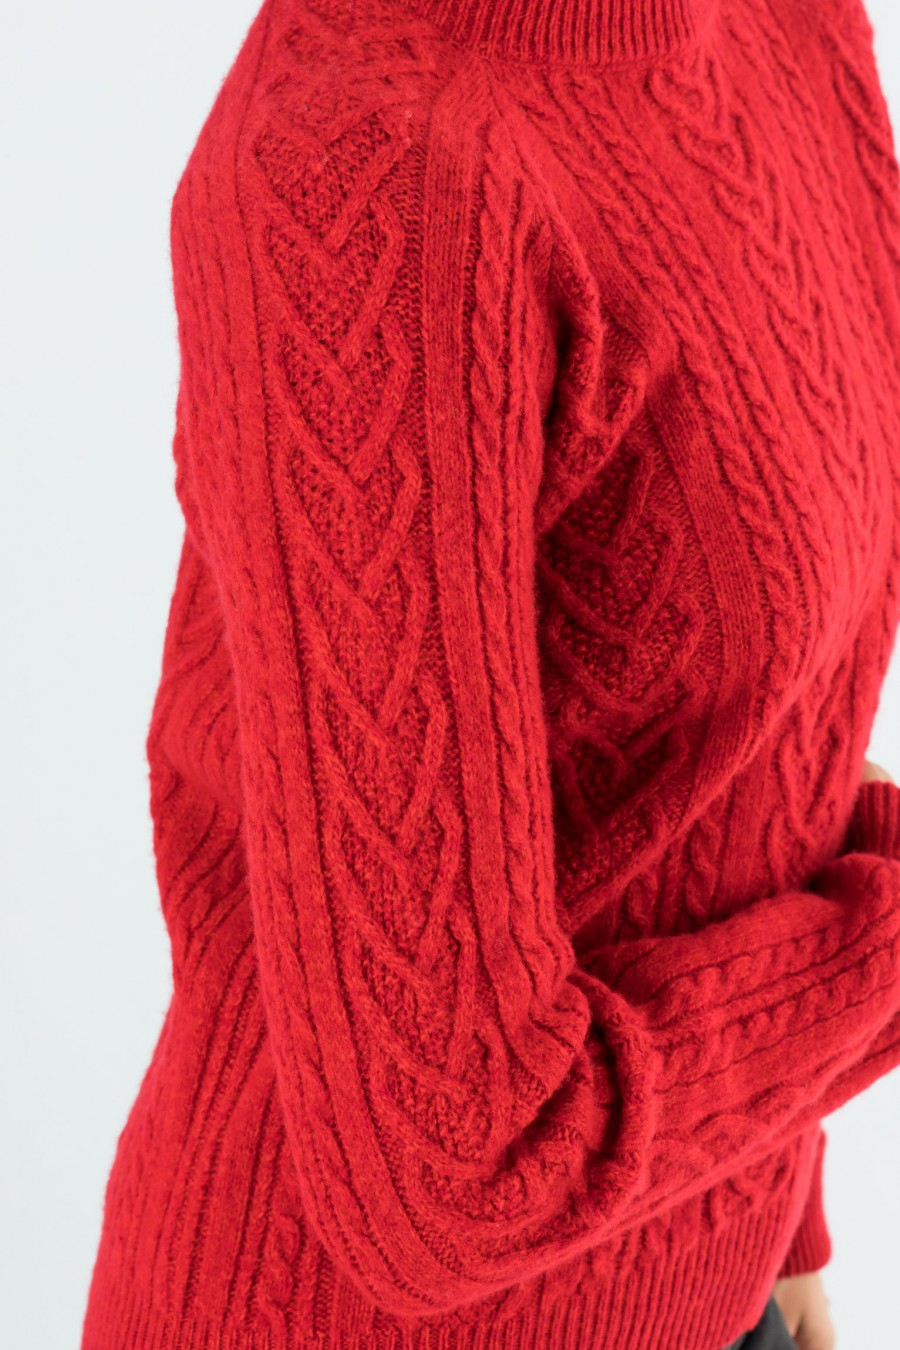 Red cashmere pullover with braids